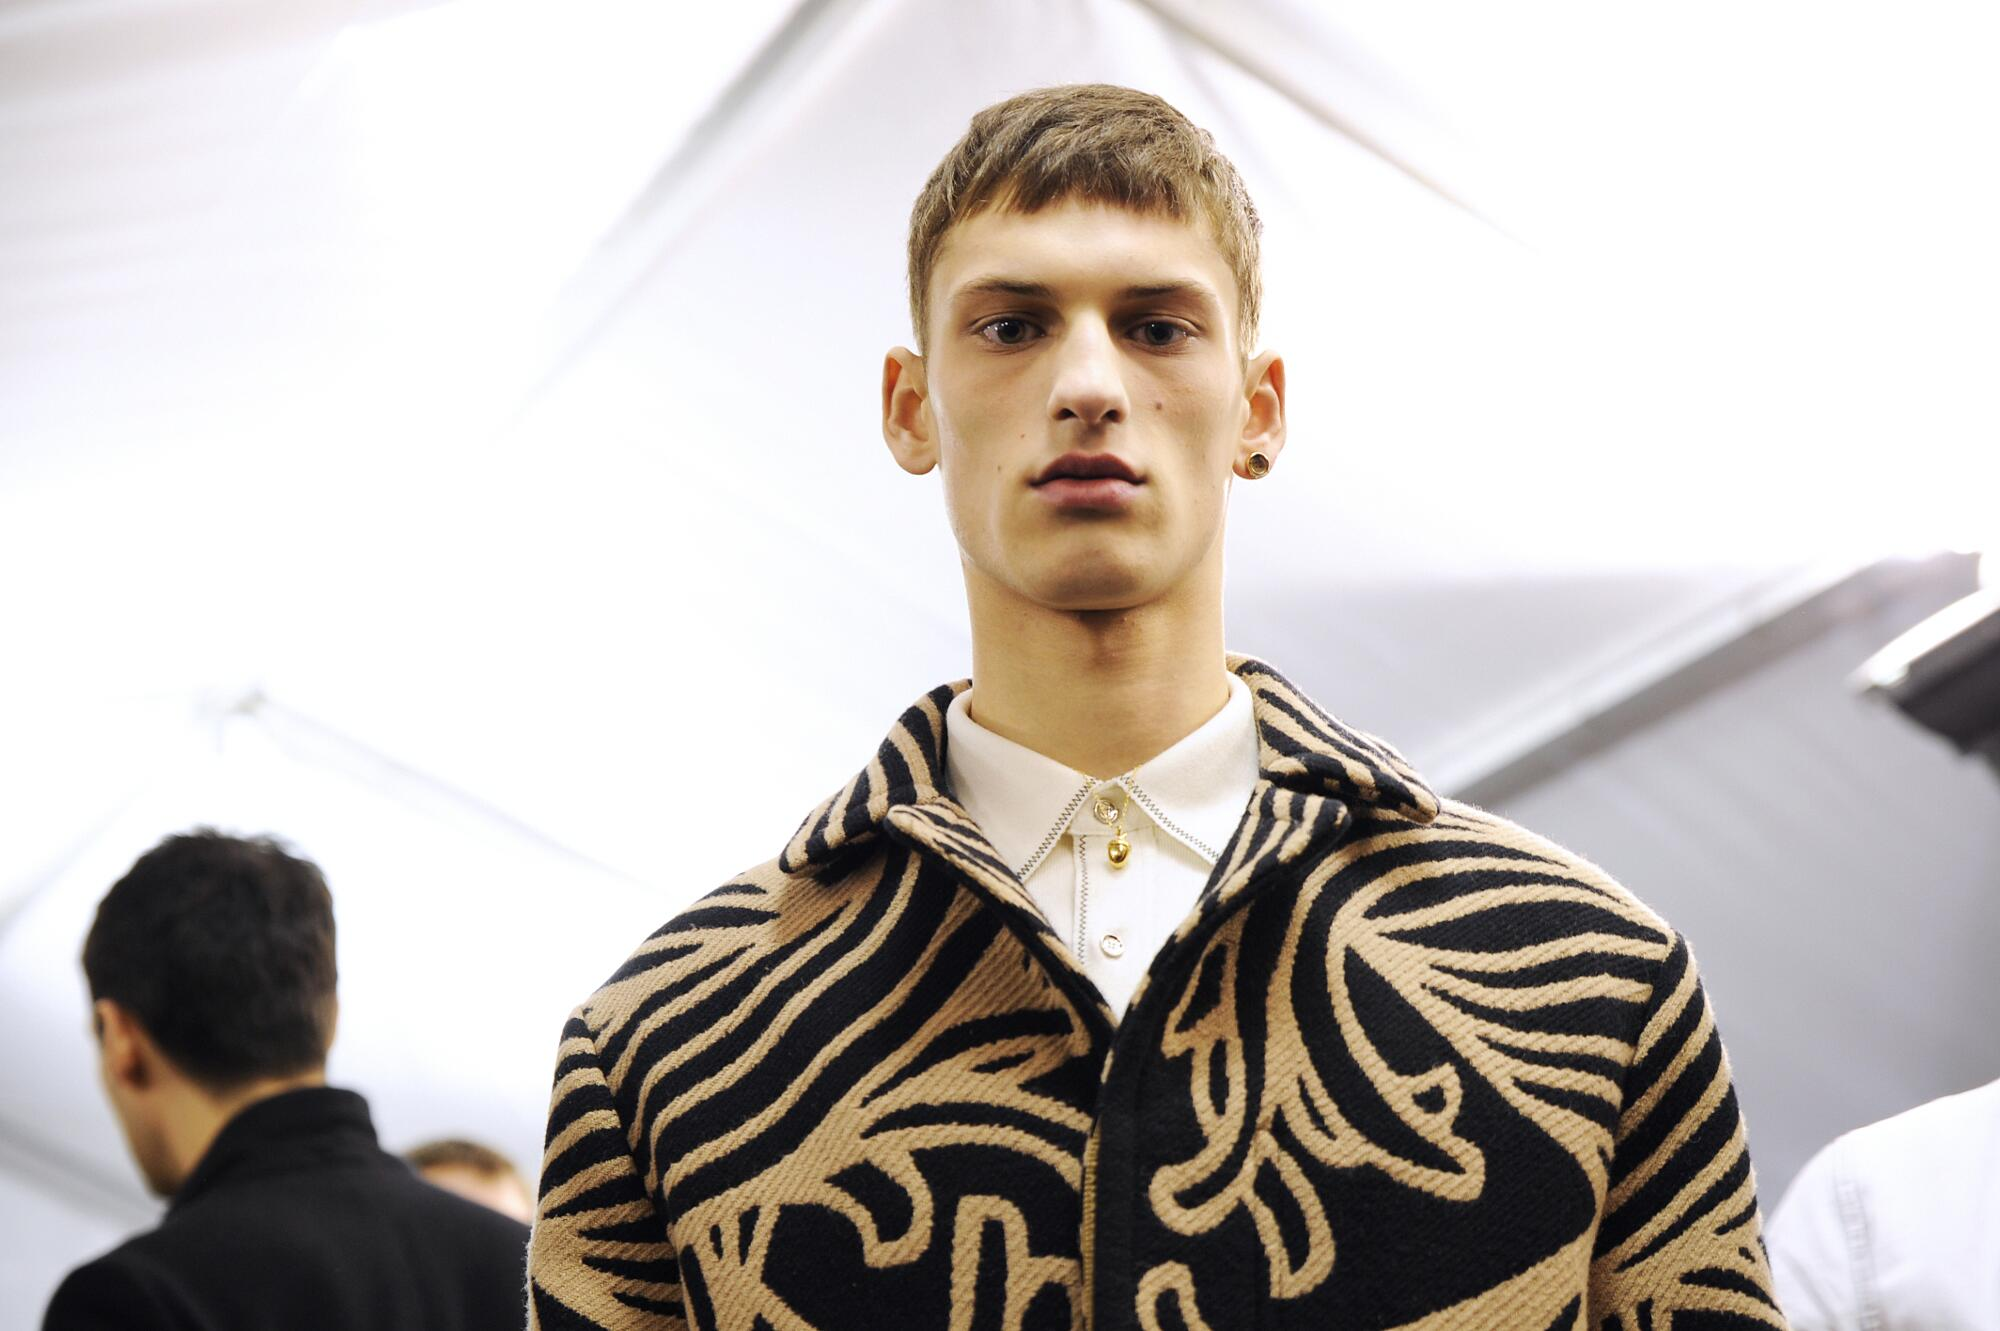 2015 Backstage Louis Vuitton Man Model